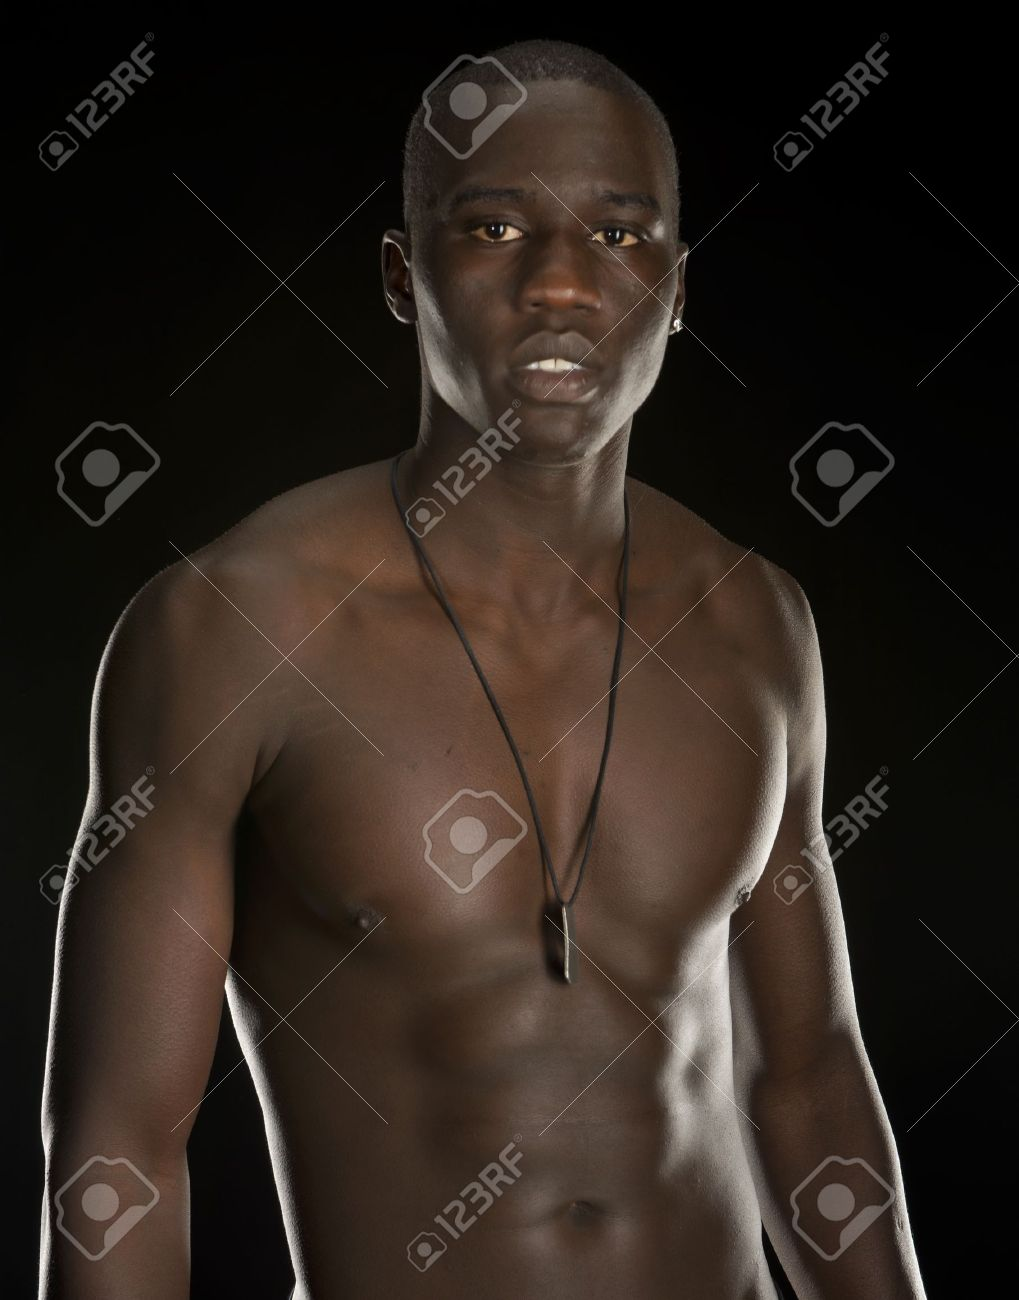 Bare chested young black male model isolated on a black background stock photo 16085409